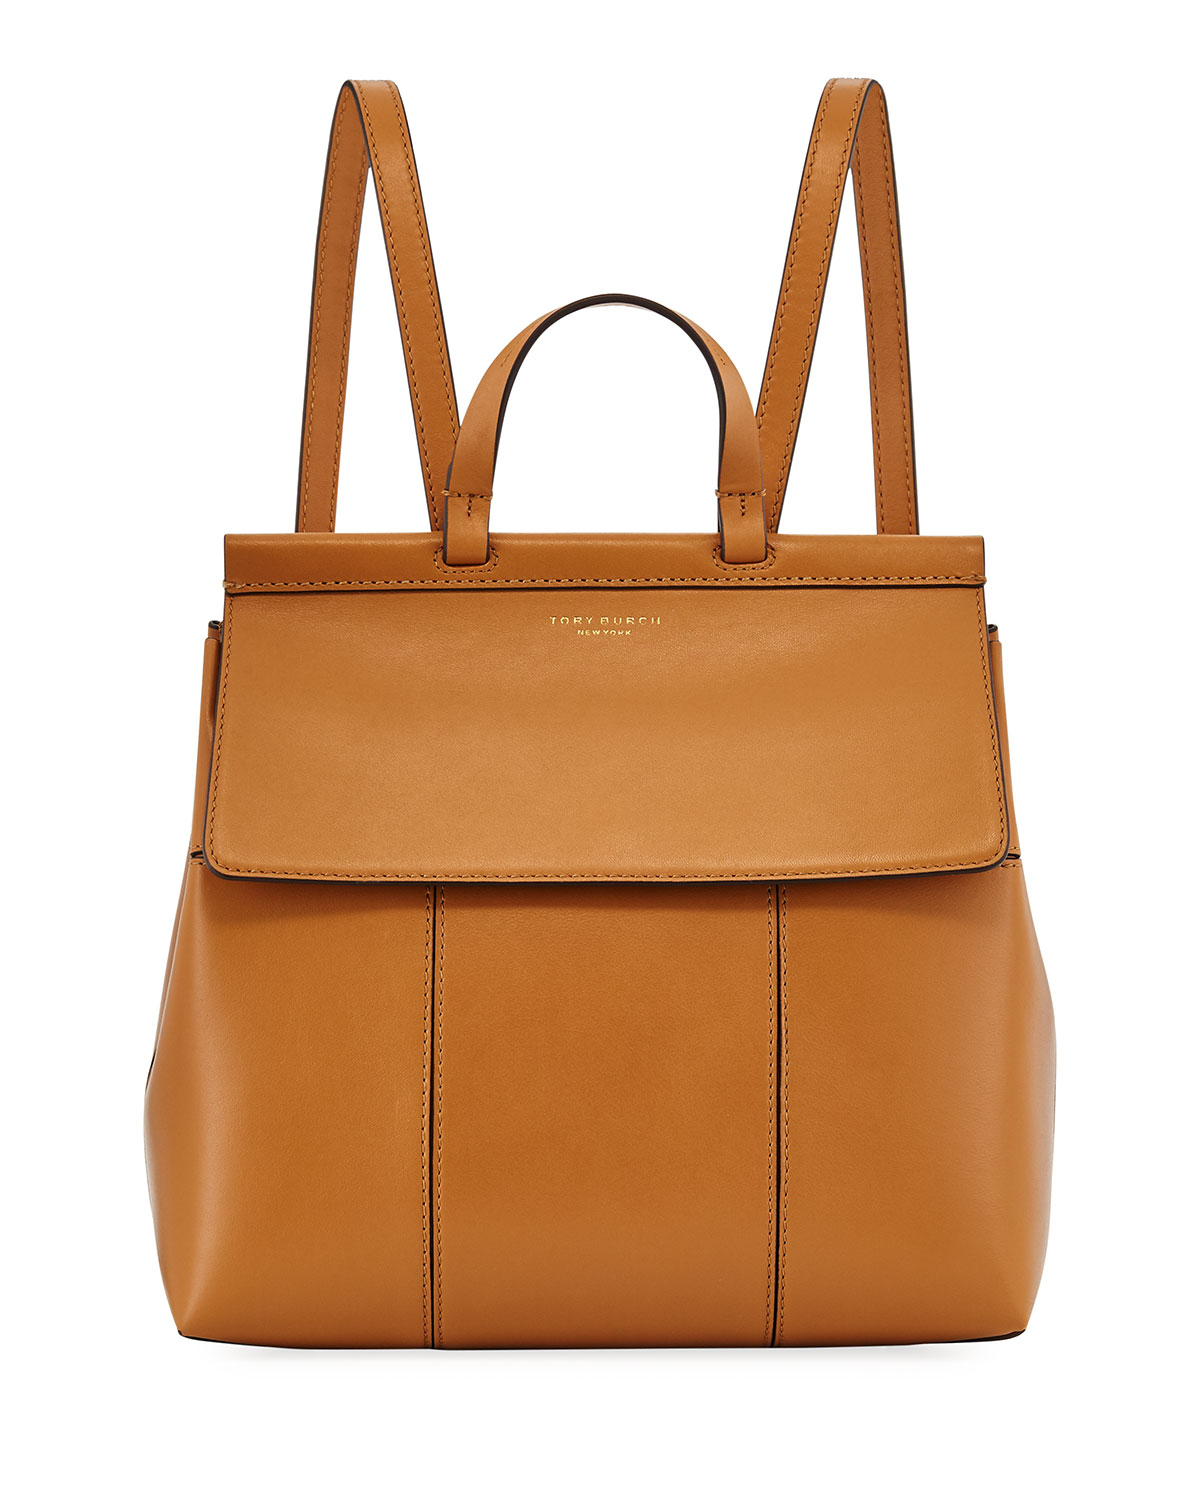 Tory Burch Block T Leather Backpack Neiman Marcus